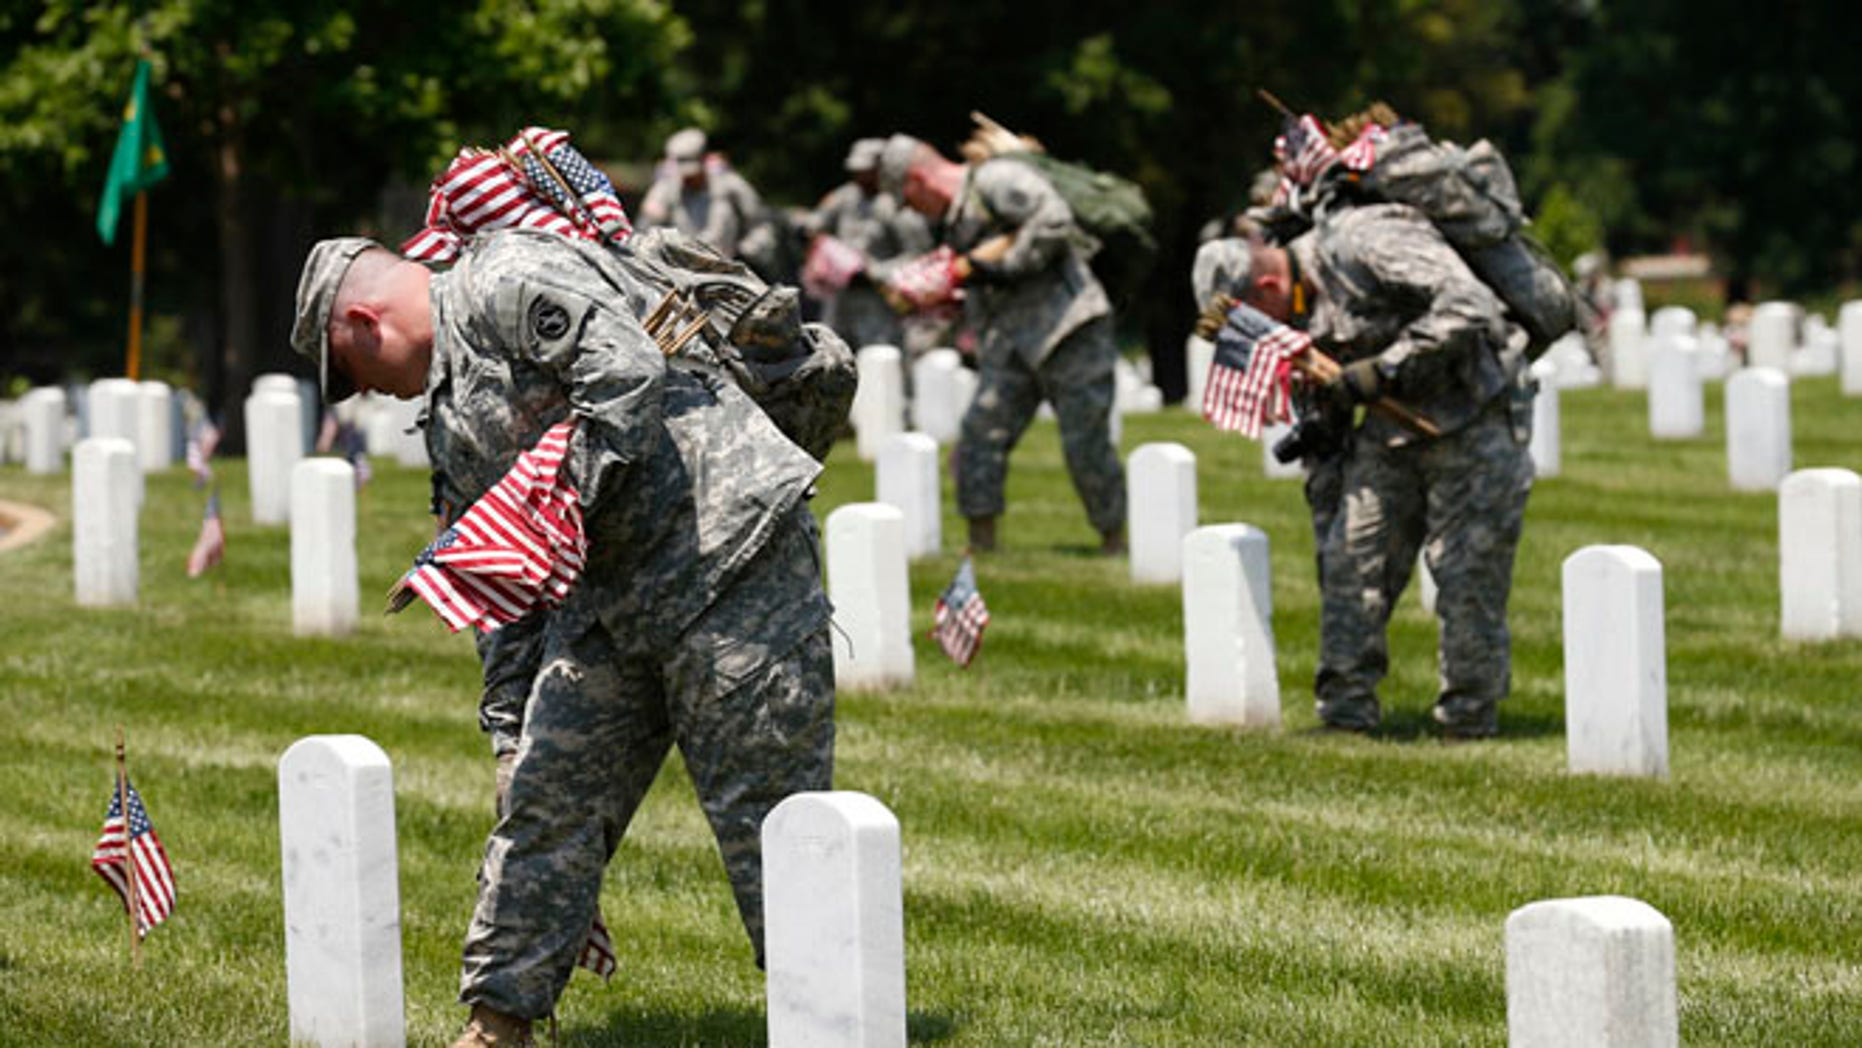 """Members of the Third U.S. Infantry Regiment (The Old Guard) take part in a """"Flags-In"""" ceremony, ahead of Memorial Day, at Arlington National Cemetery in Washington May 22, 2014."""